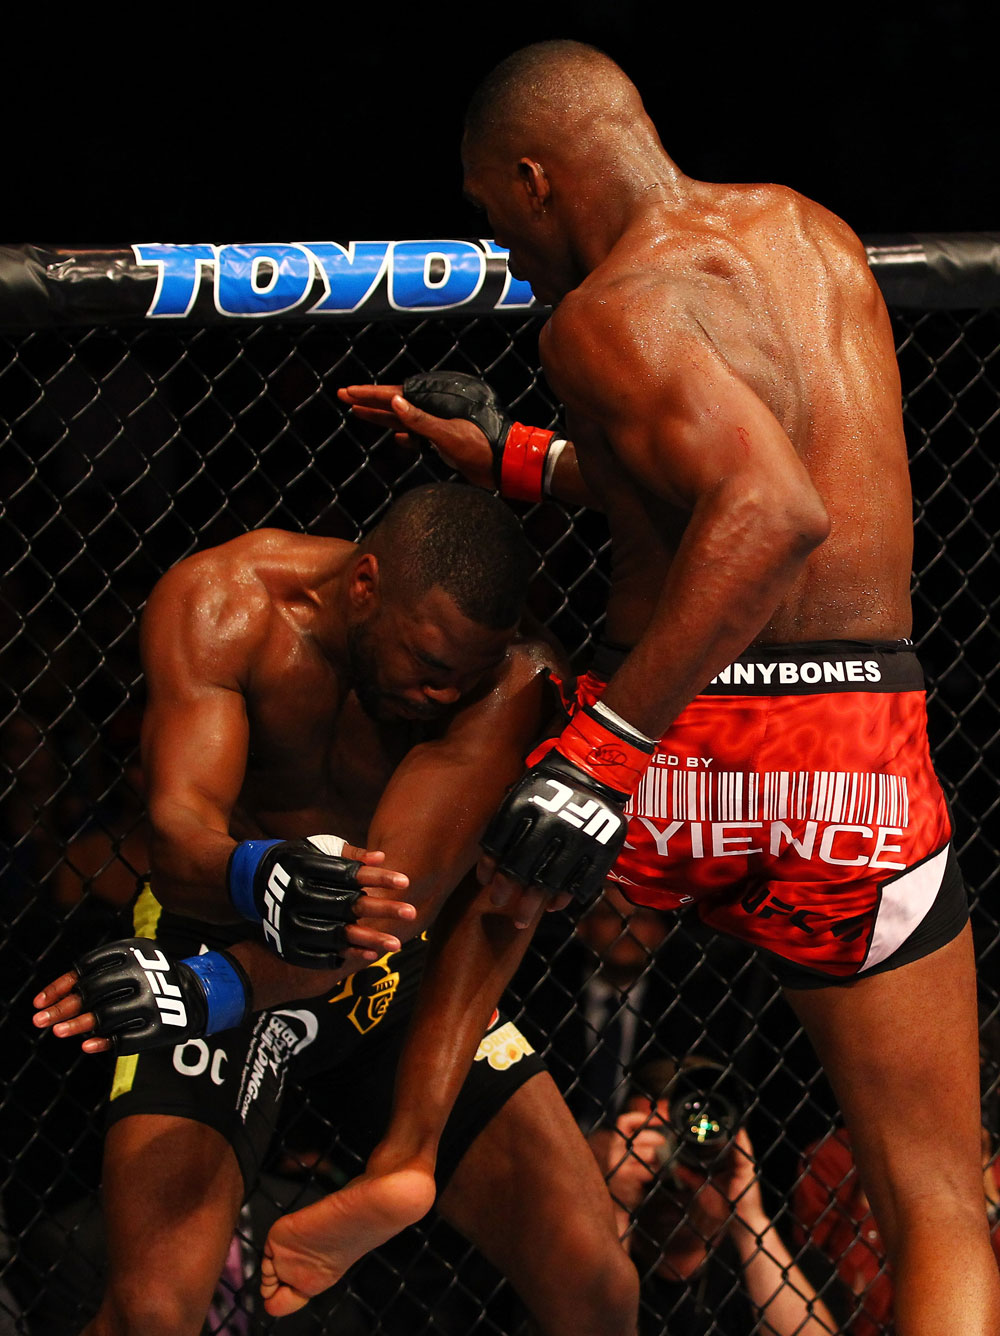 ATLANTA, GA - APRIL 21:  Jon Jones (R) knees Rashad Evans during their light heavyweight title bout for UFC 145 at Philips Arena on April 21, 2012 in Atlanta, Georgia.  (Photo by Al Bello/Zuffa LLC/Zuffa LLC via Getty Images)